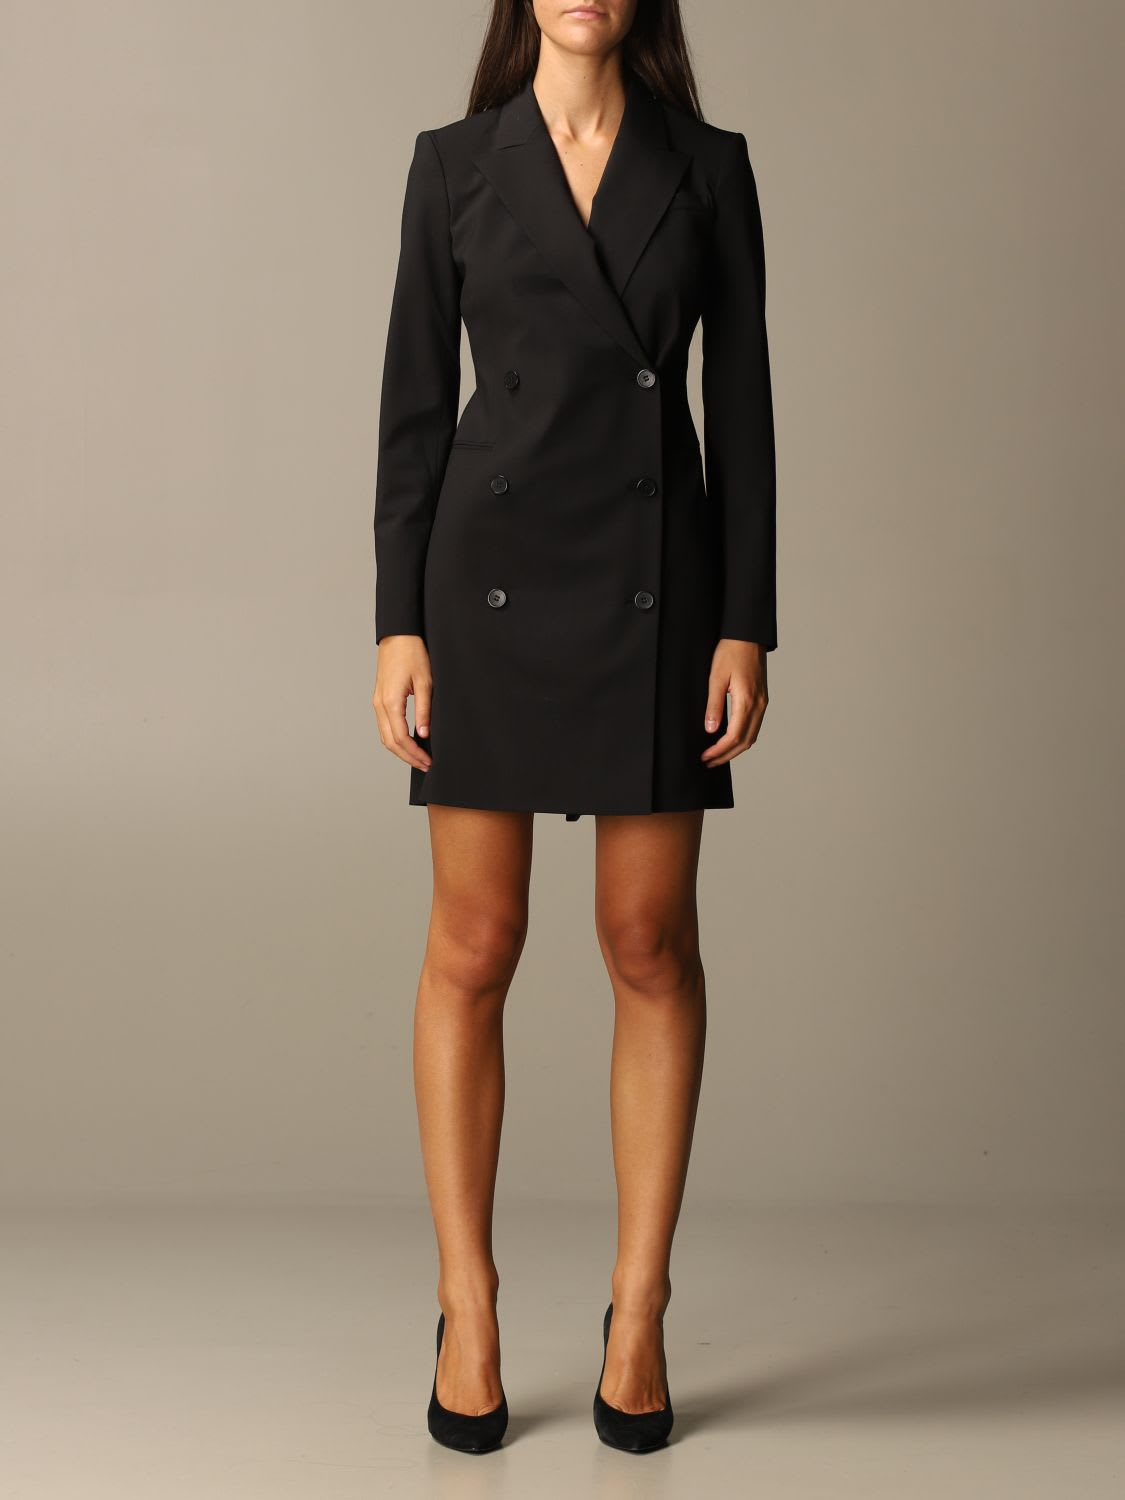 Theory Dress Theory Double-breasted Dress In Wool